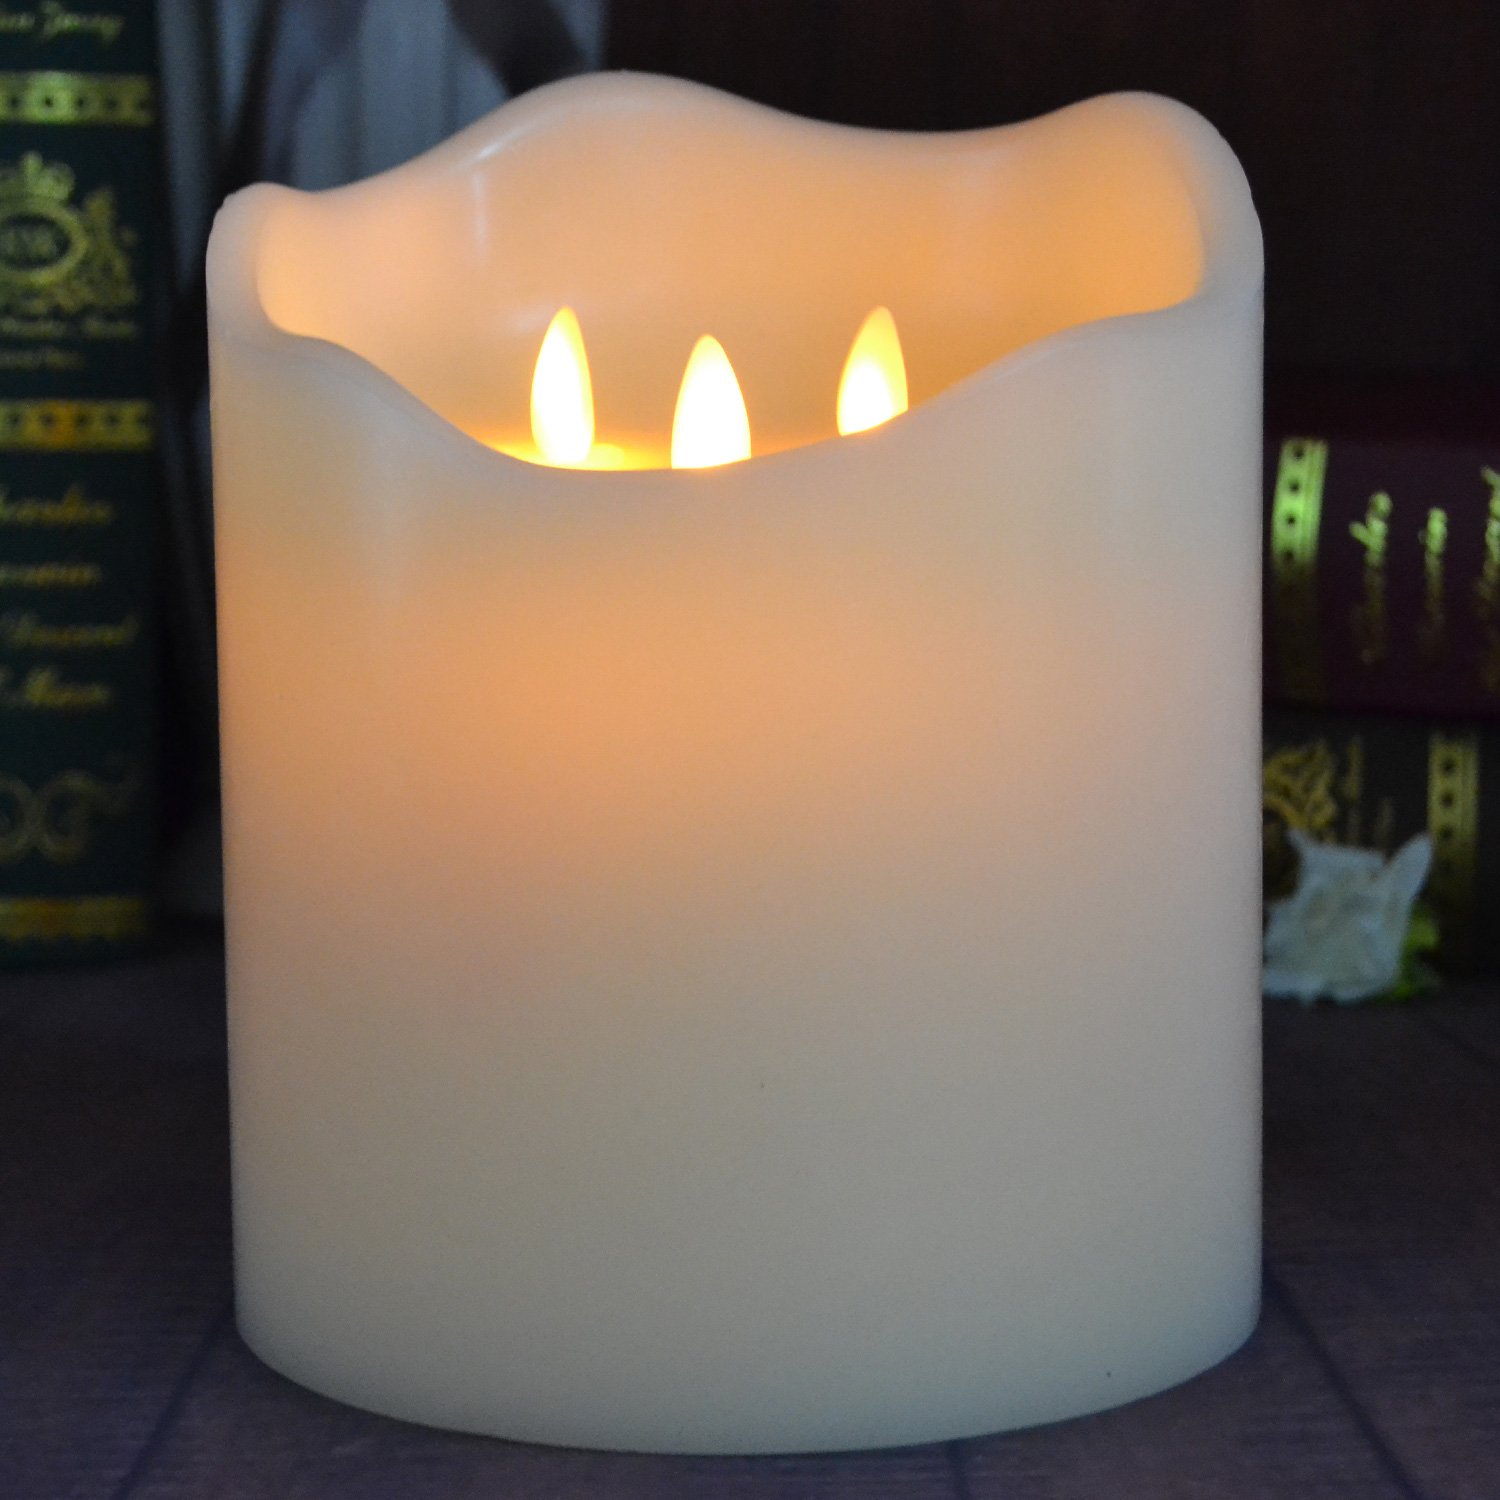 TELOSMA 3-Moving Wicks Flameless Huge Candle with Remote Control in Ivory 6 inch